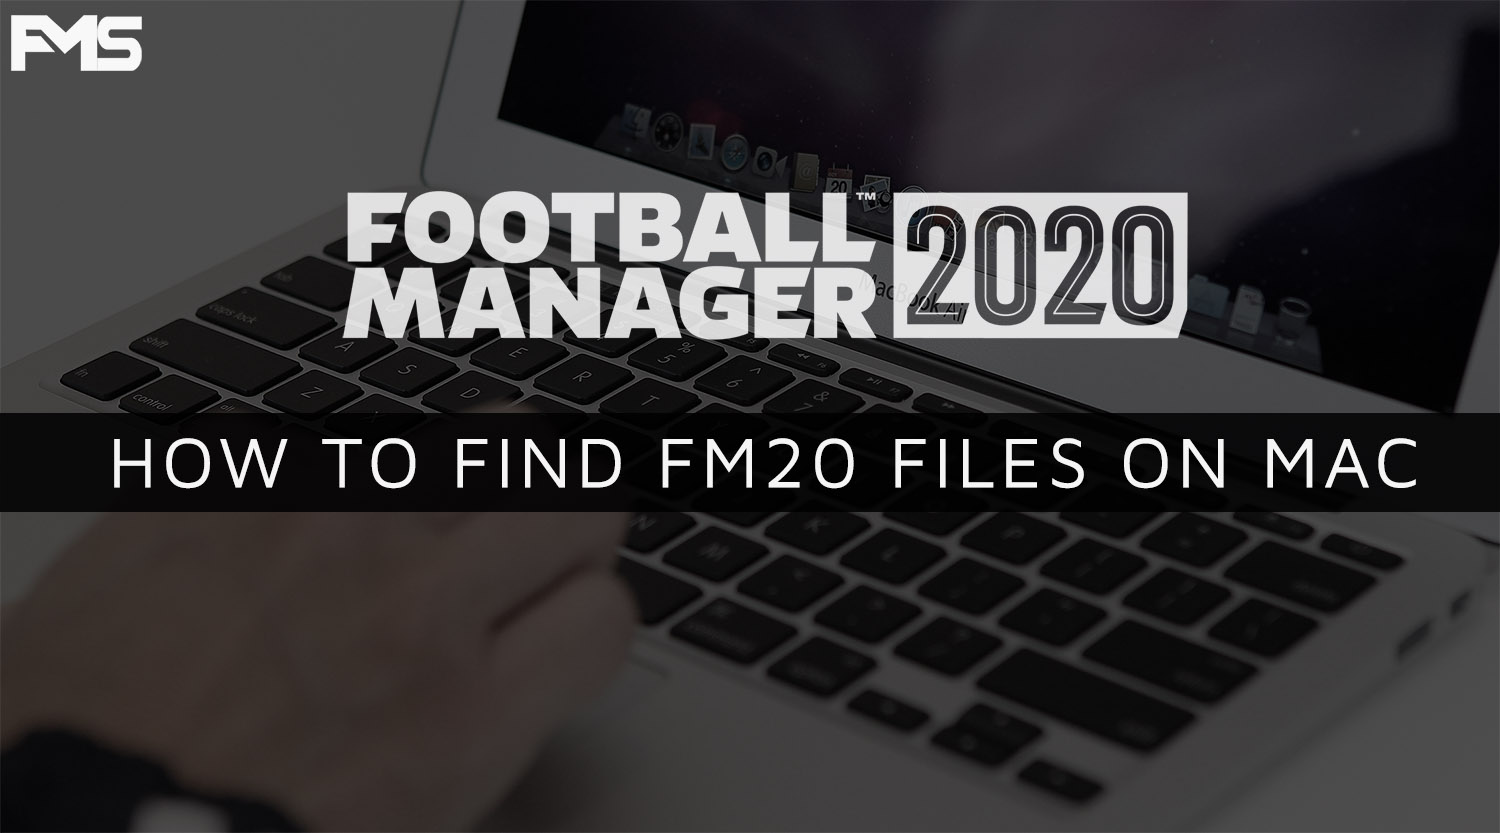 Find FM20 Files On Mac